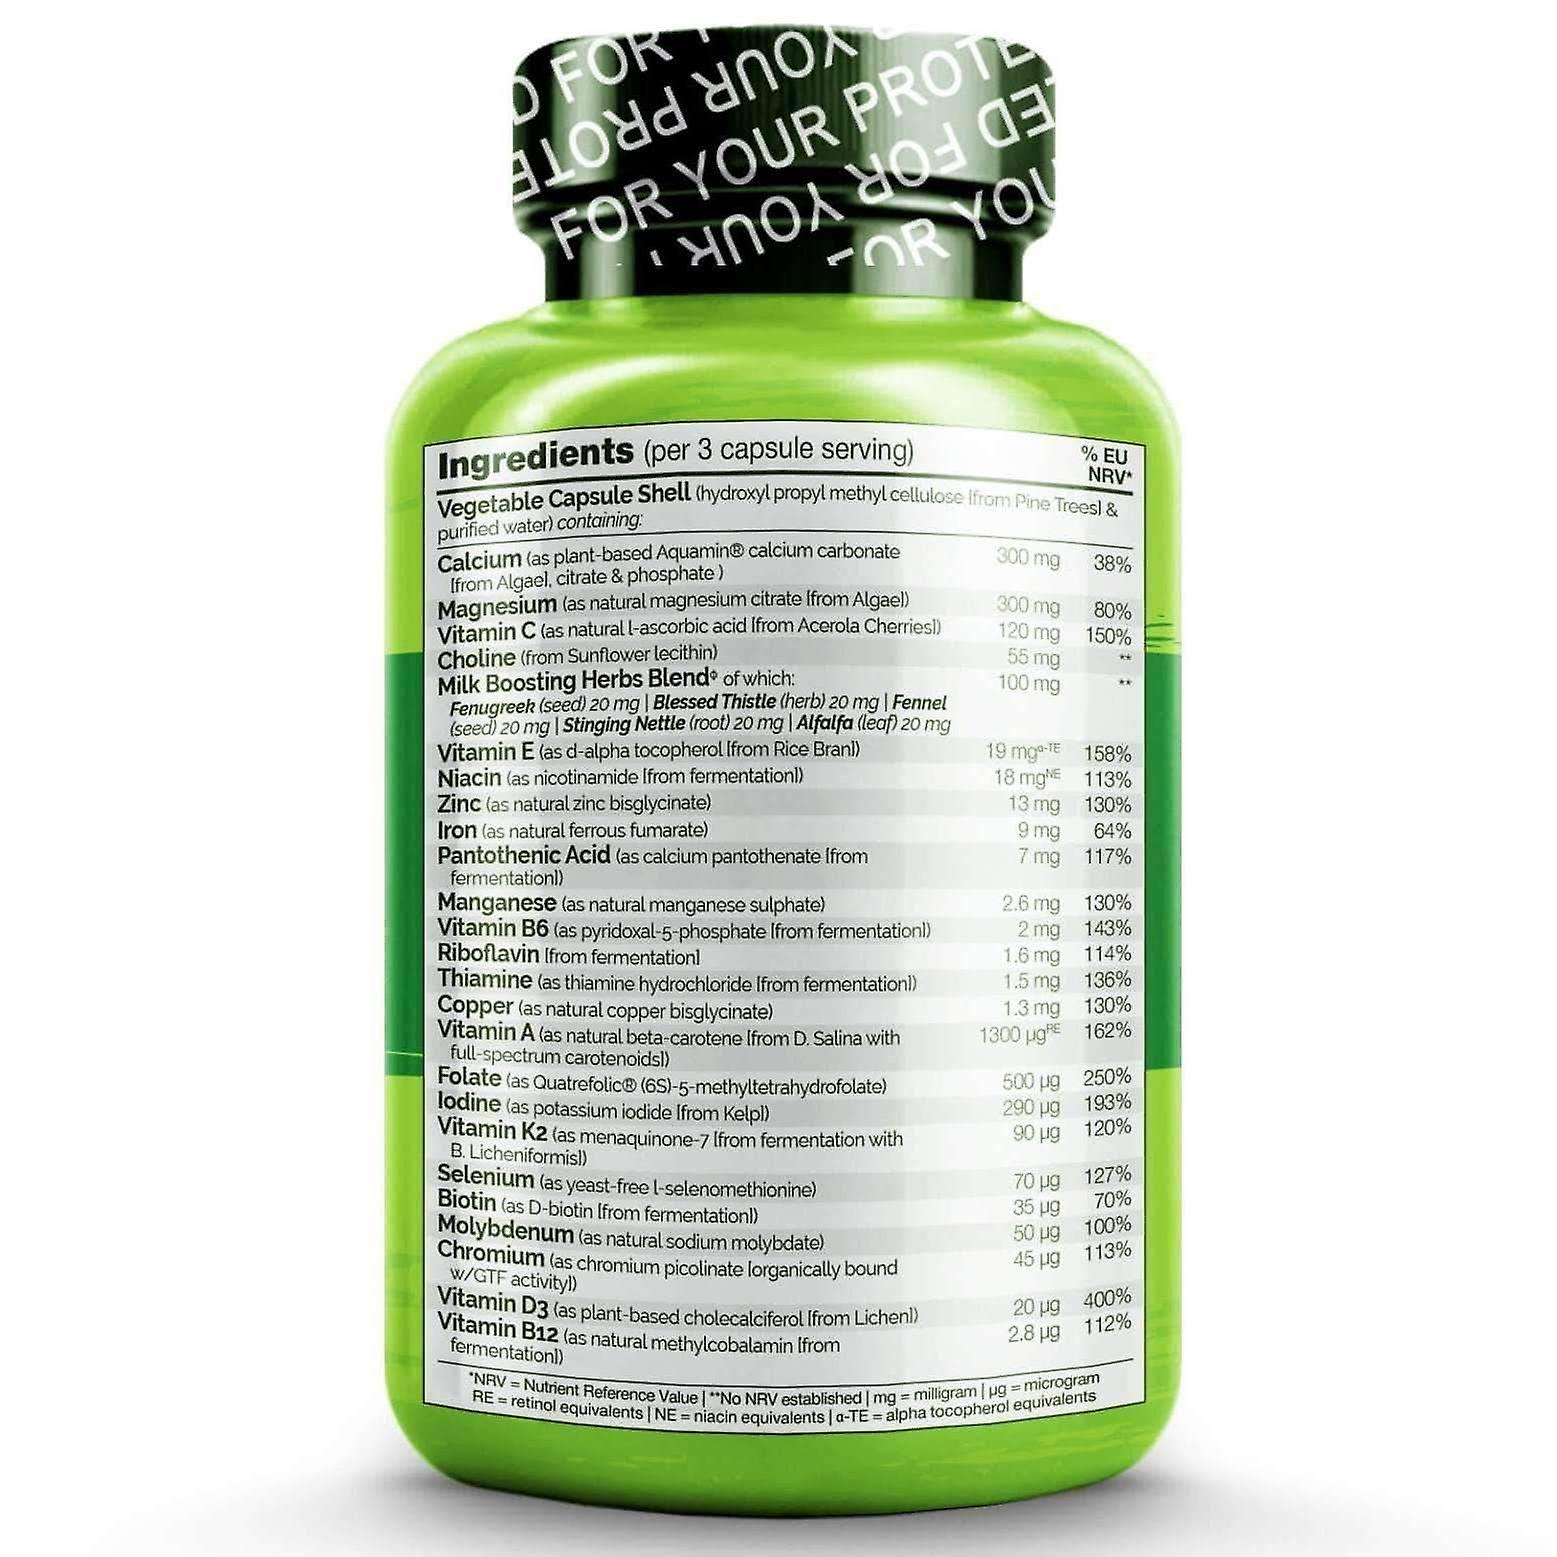 Postnatal whole food multivitamin for new mums with natural vitamins and herbs - 180 caps (vegan)